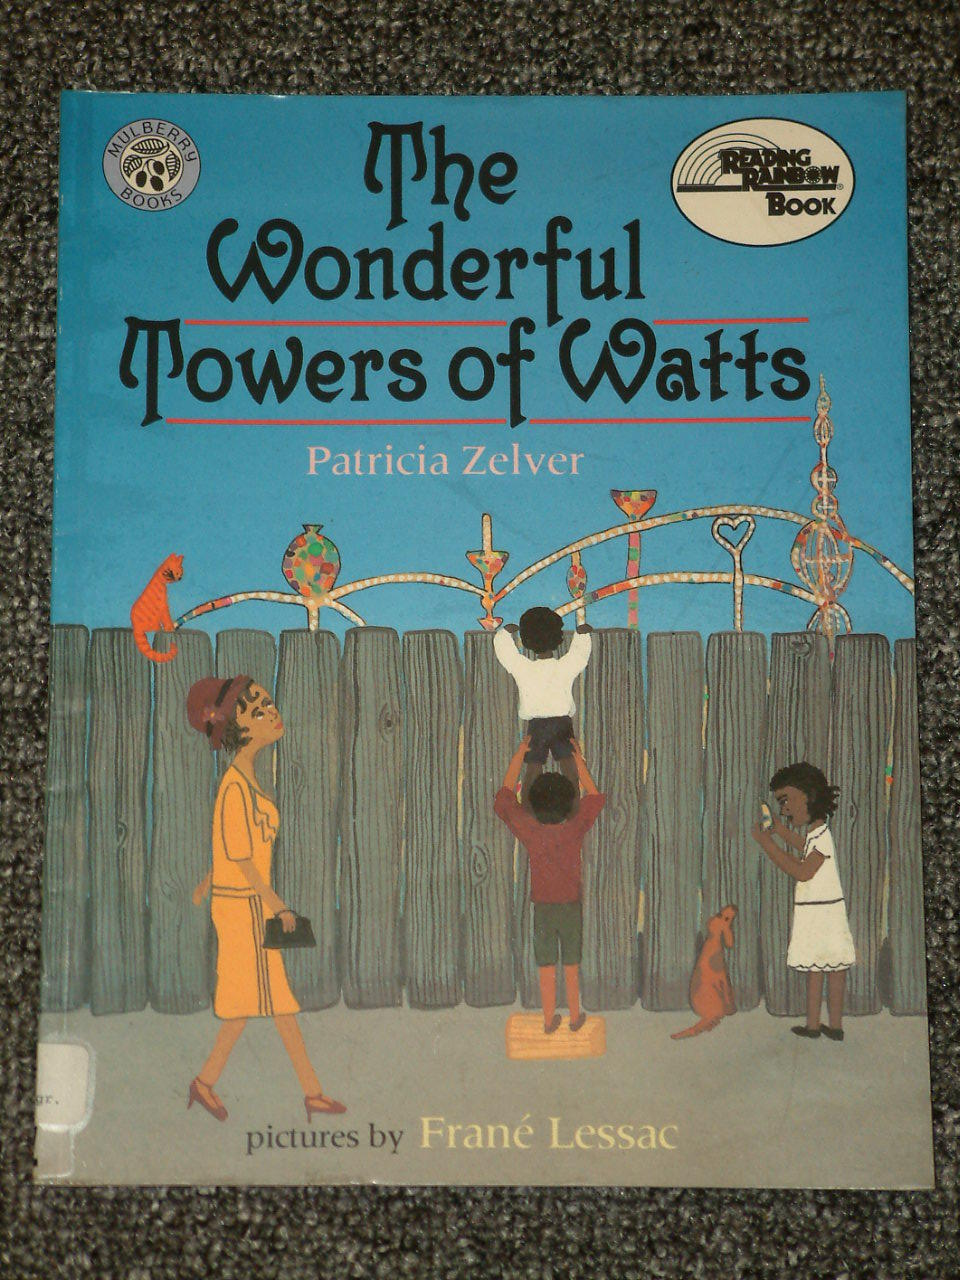 The Wonderful Towers of Watts by Patricia Zelver and Frane